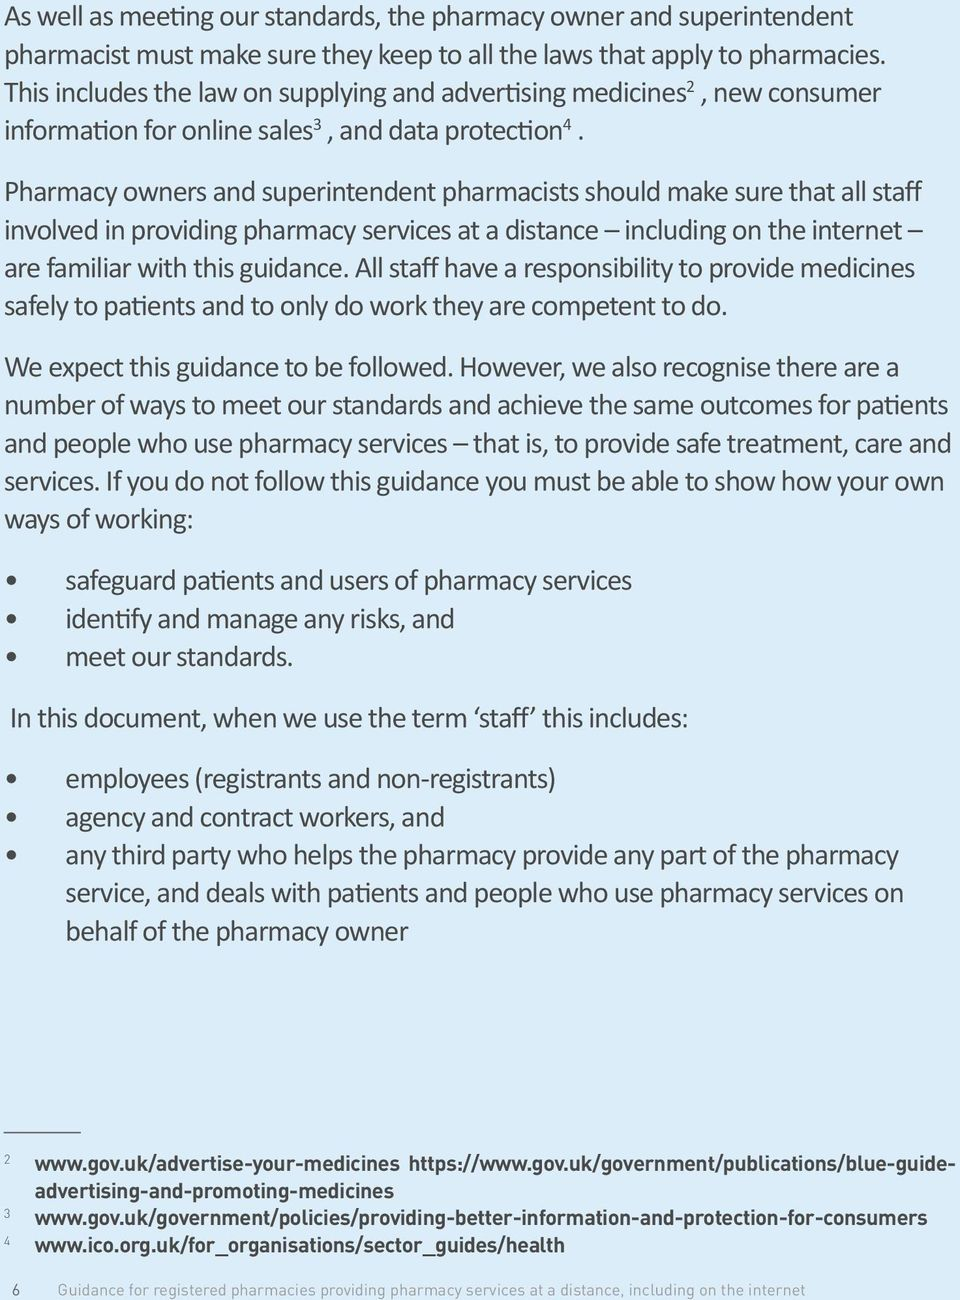 Pharmacy owners and superintendent pharmacists should make sure that all staff involved in providing pharmacy services at a distance including on the internet are familiar with this guidance.